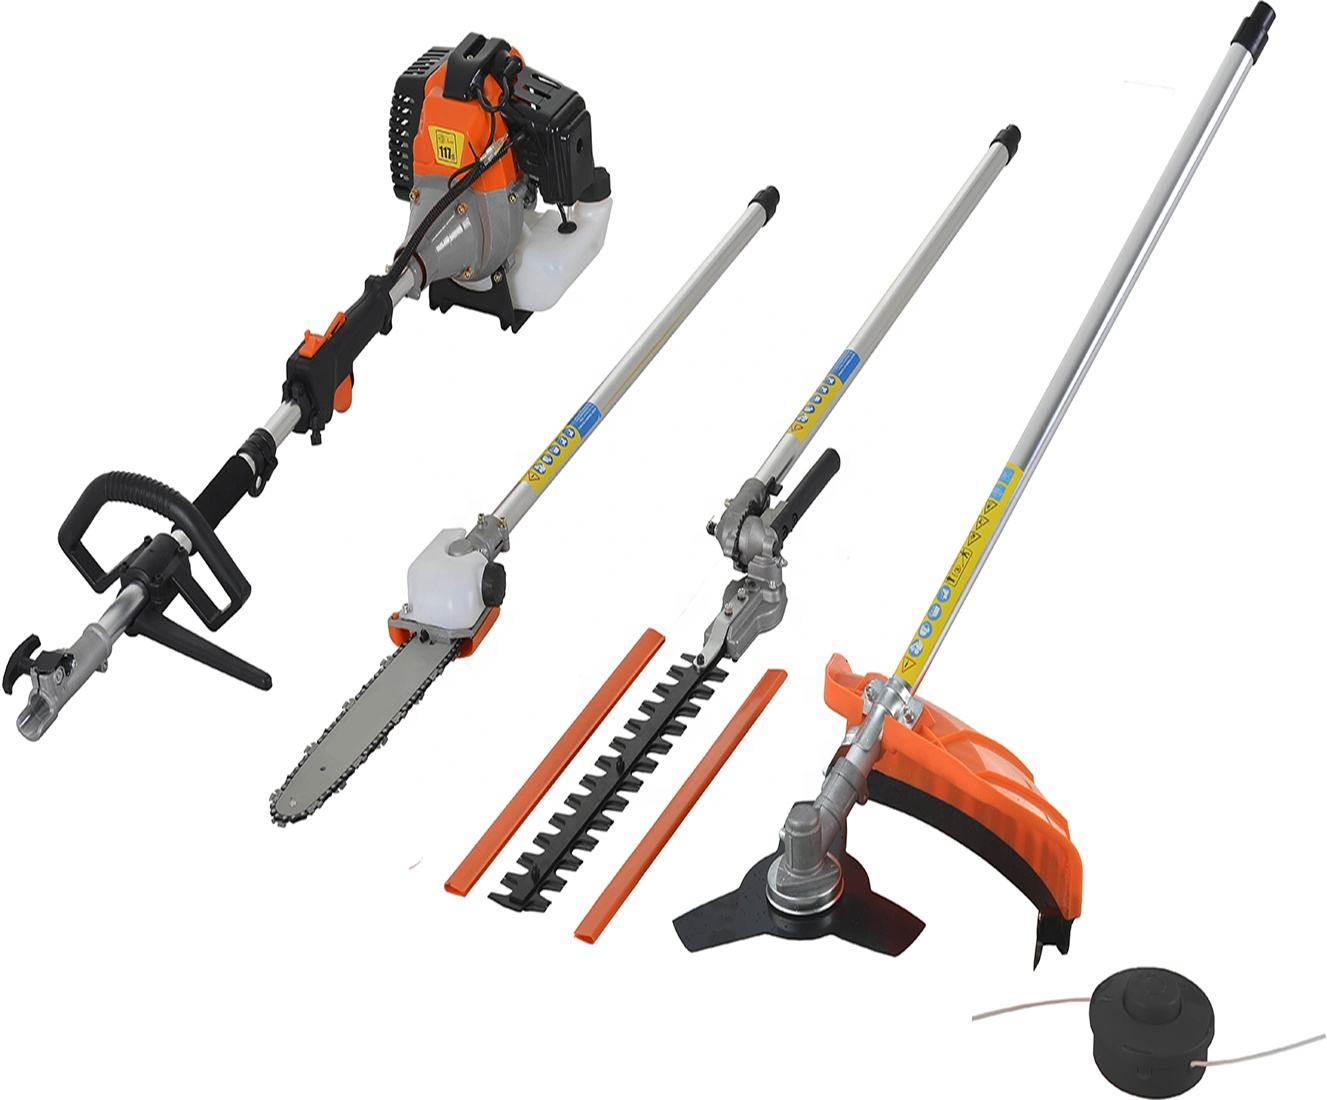 4 In 1 Multi Function Gereedschap Bosmaaier 52cc <span class=keywords><strong>Gras</strong></span> Trimmer Side Pack <span class=keywords><strong>Gras</strong></span> <span class=keywords><strong>Snijmachine</strong></span>